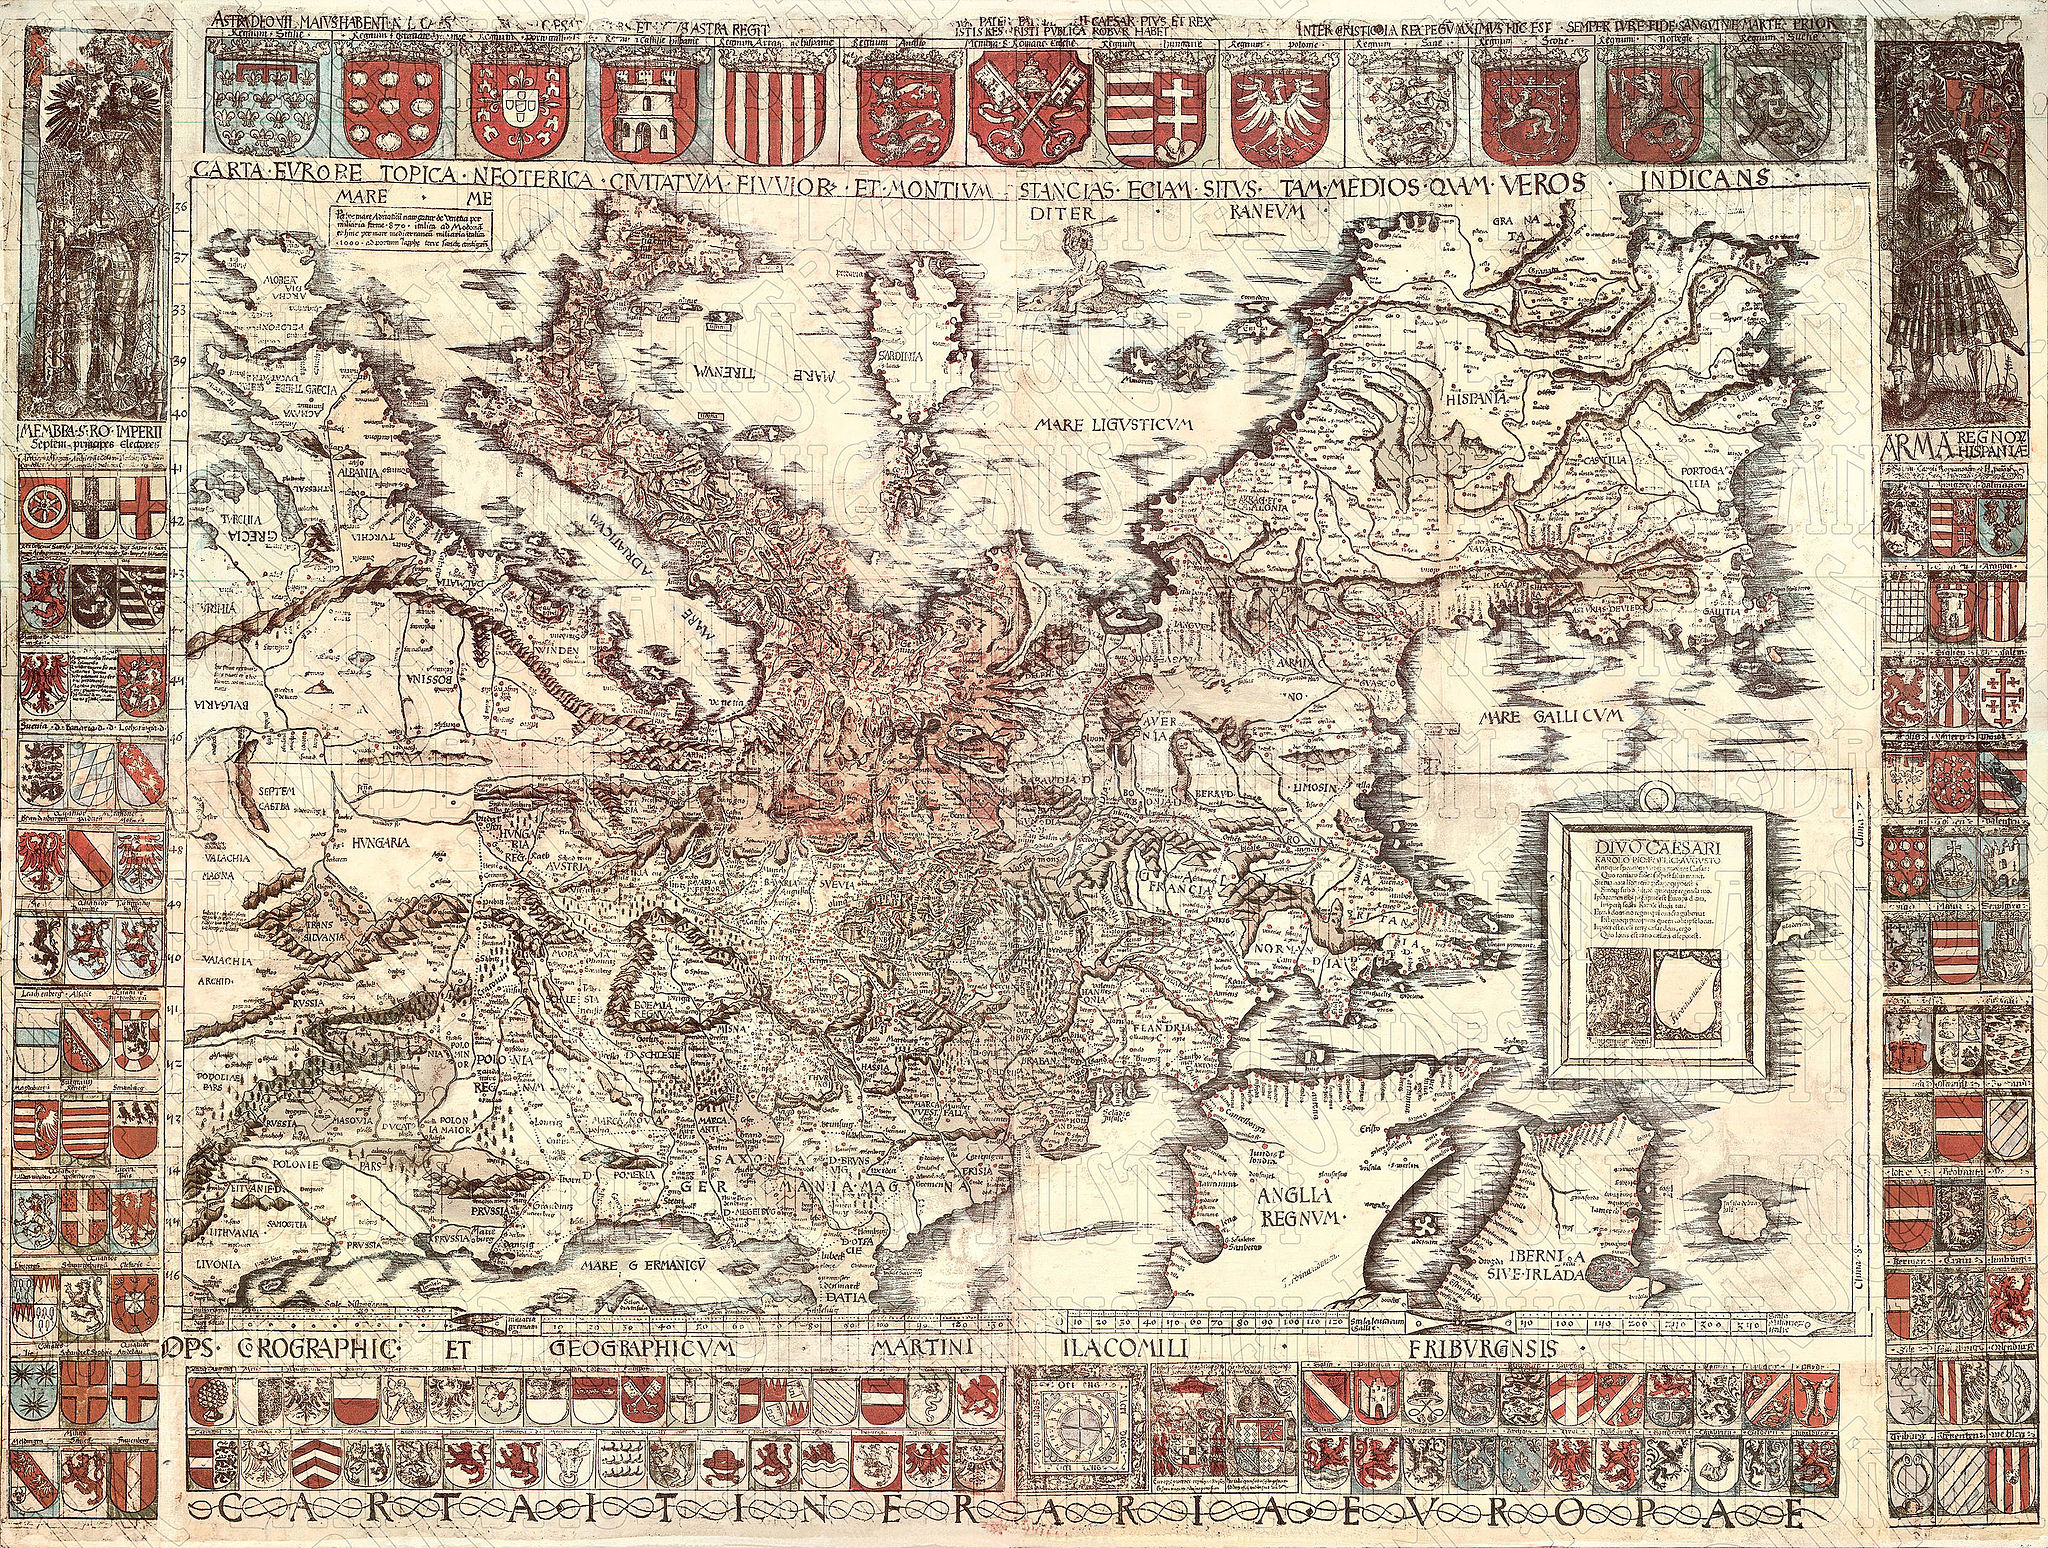 Map of Europe drawn by Martin Waldseemüller, dedicated to Charles V (Emperor of the Holy Roman Empire 1519–1556).